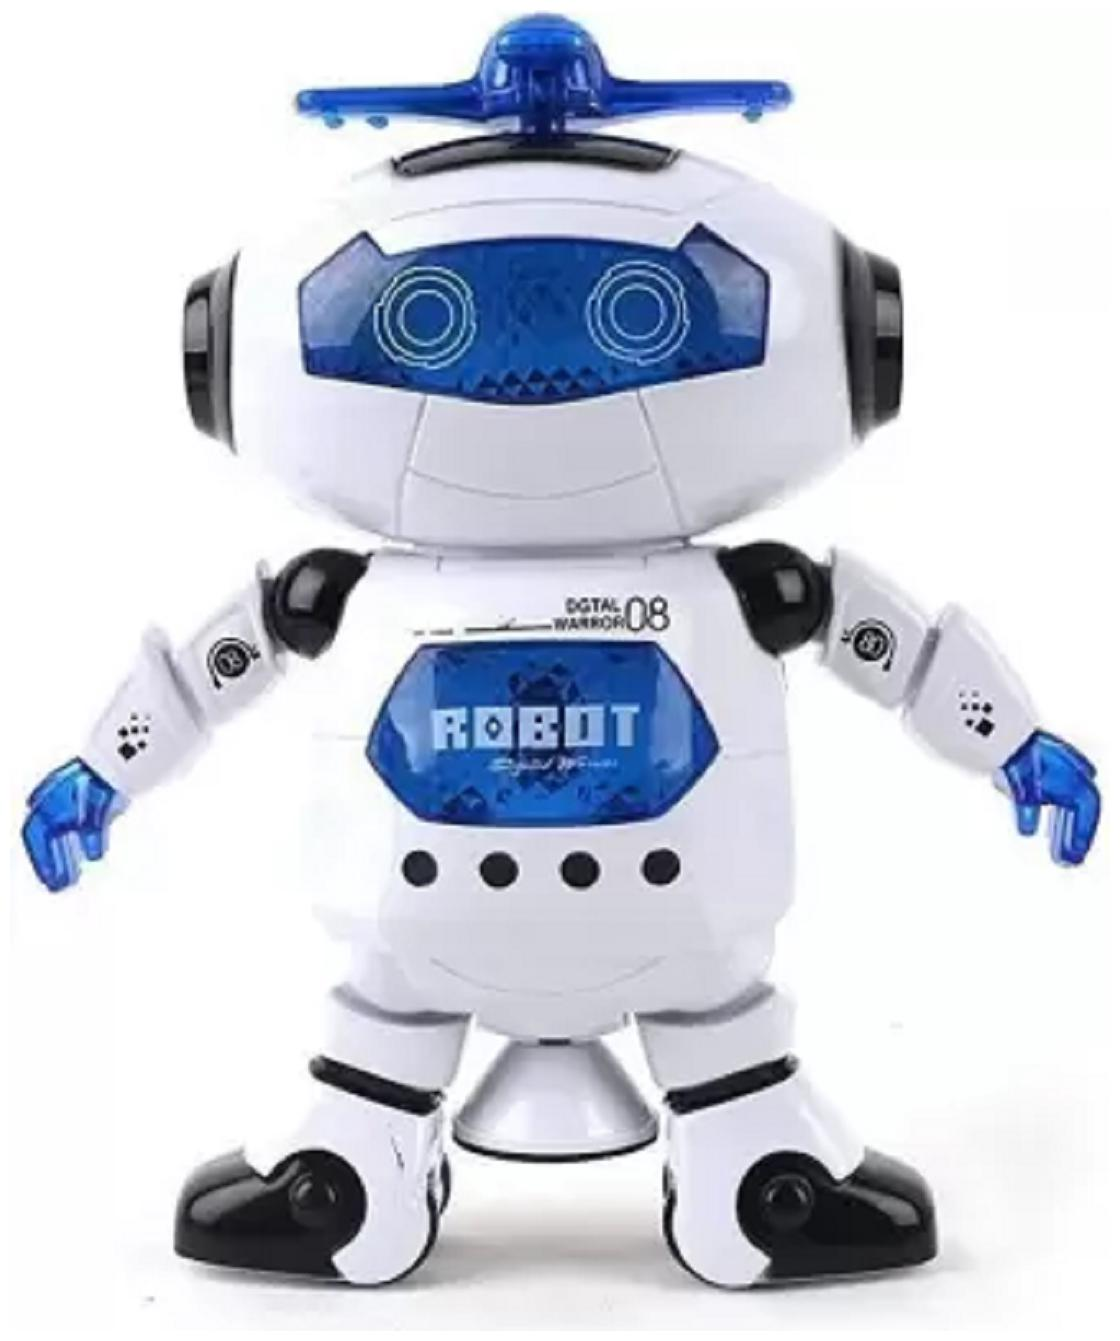 https://assetscdn1.paytm.com/images/catalog/product/K/KI/KIDNAUGHTY-ROBOKANC303218E282F552/1564631203321_0..jpg